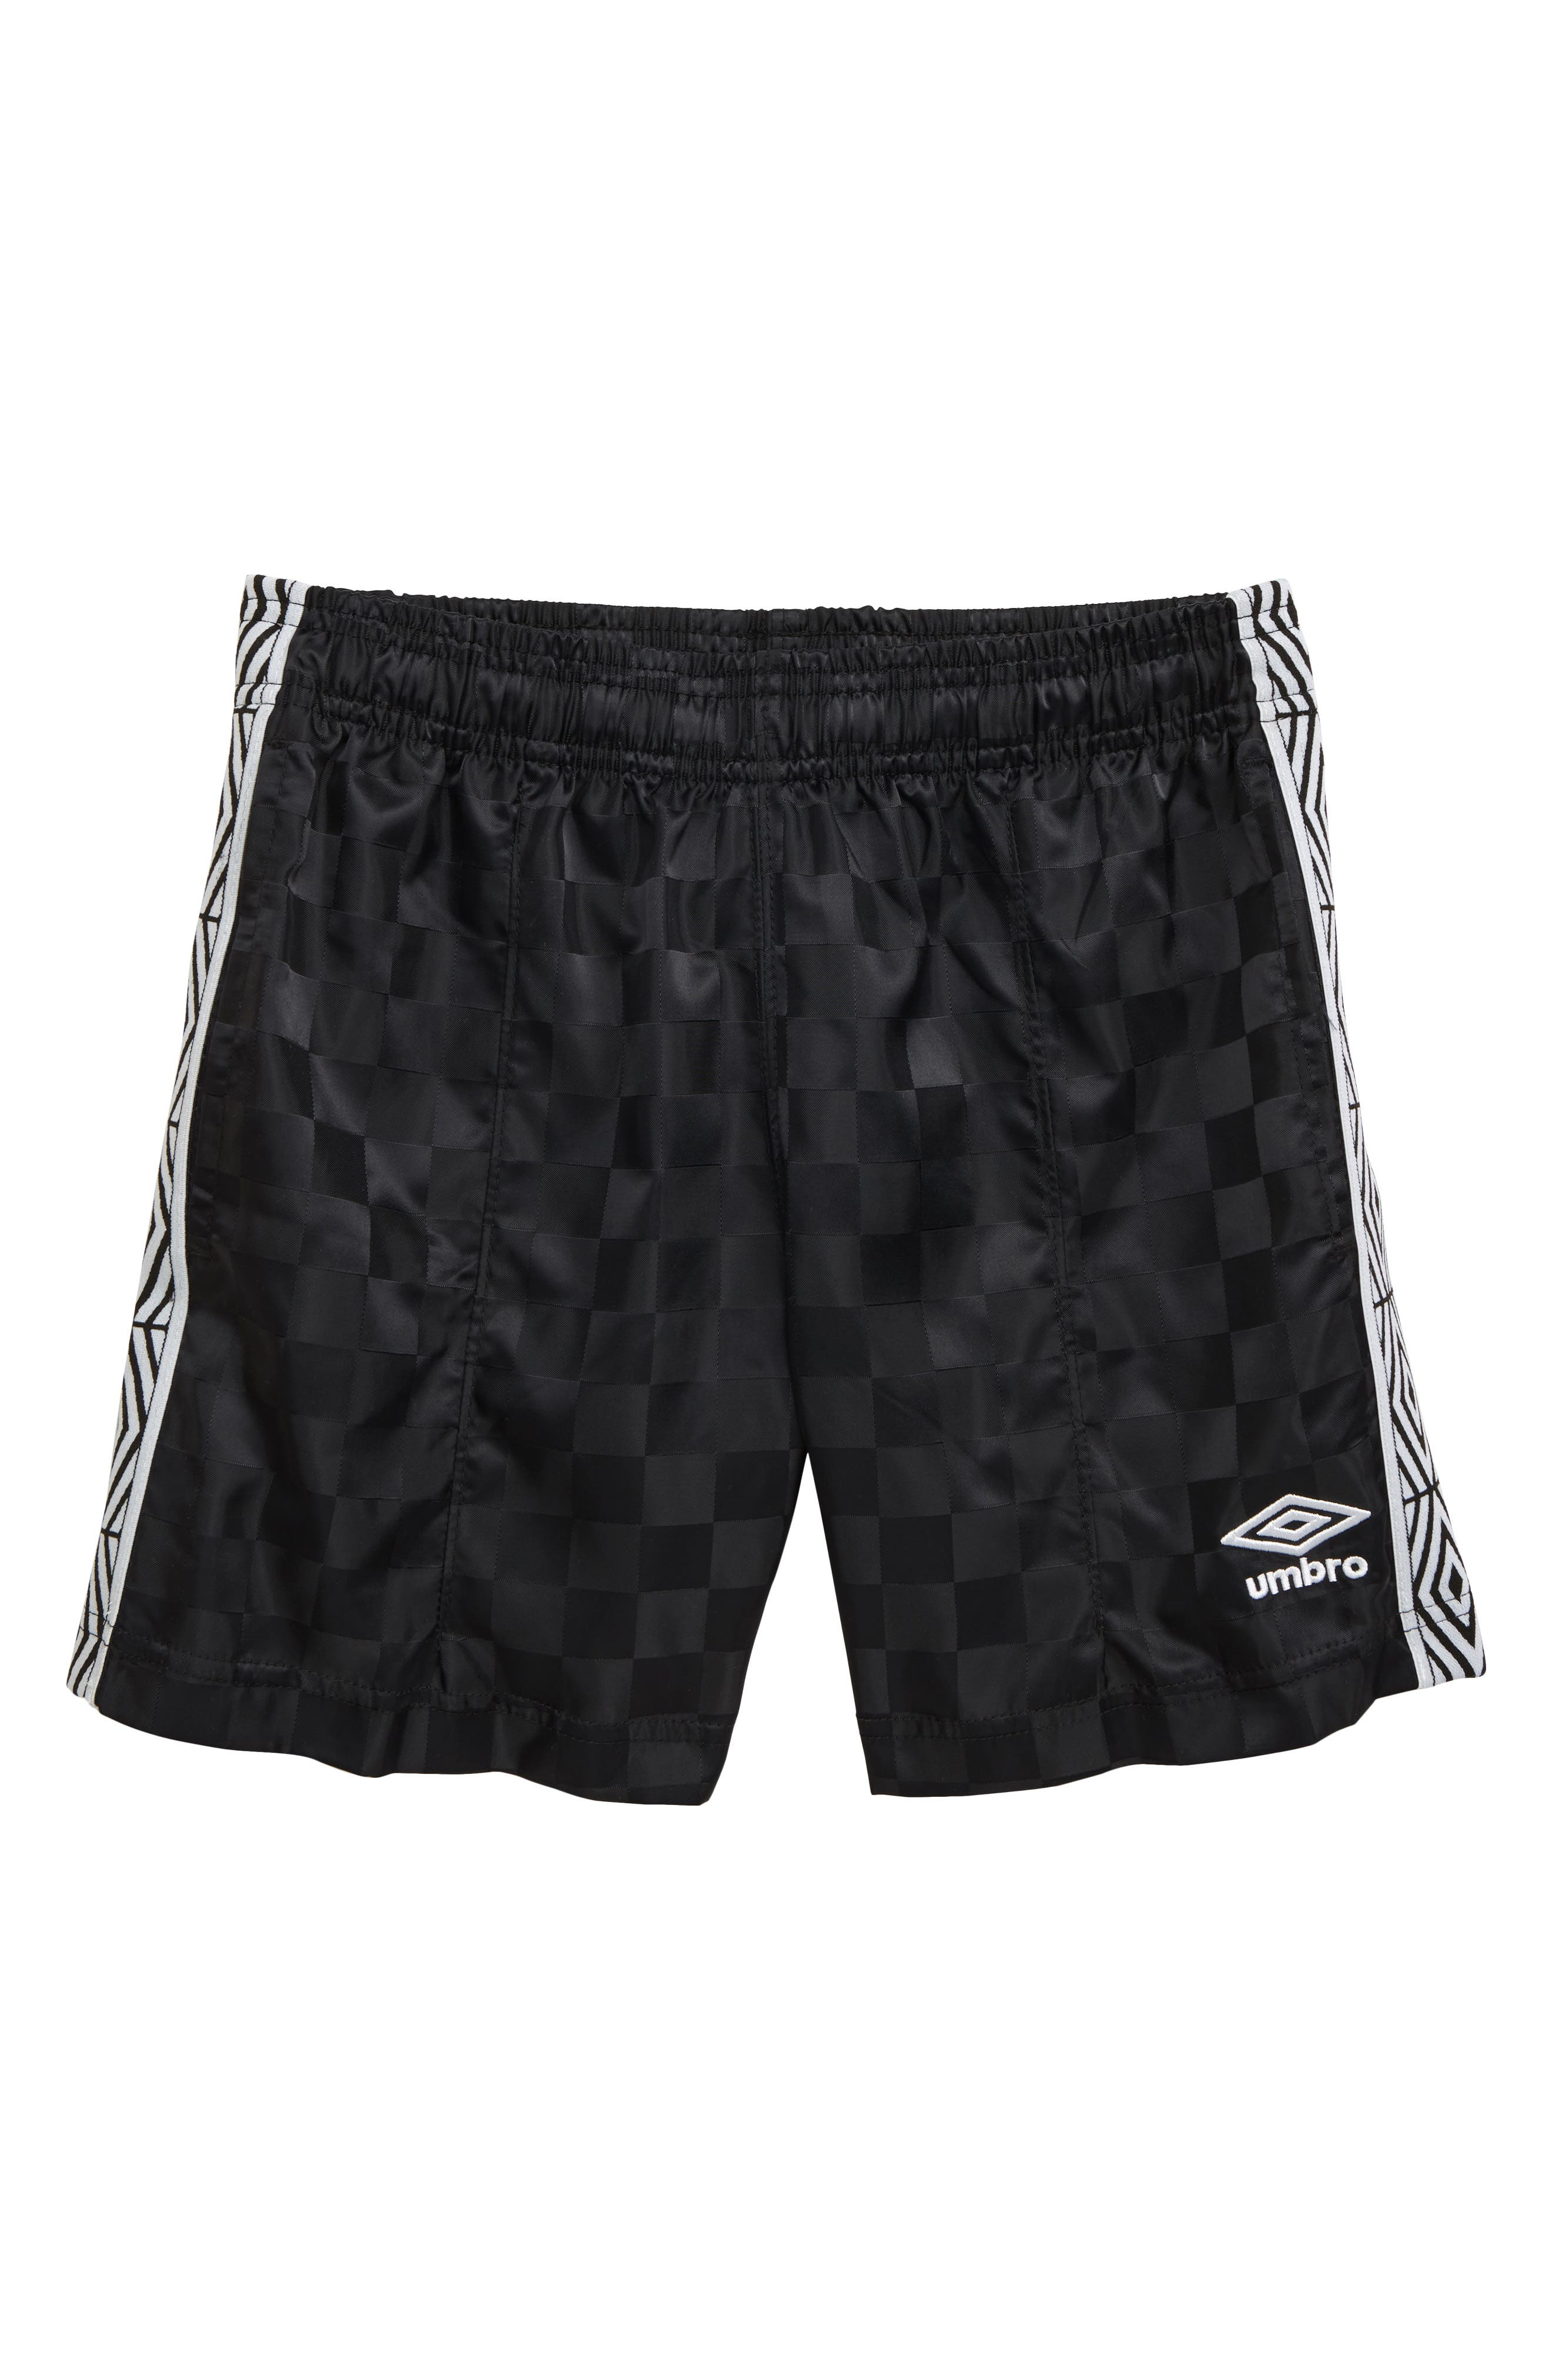 umbro checkerboard pants